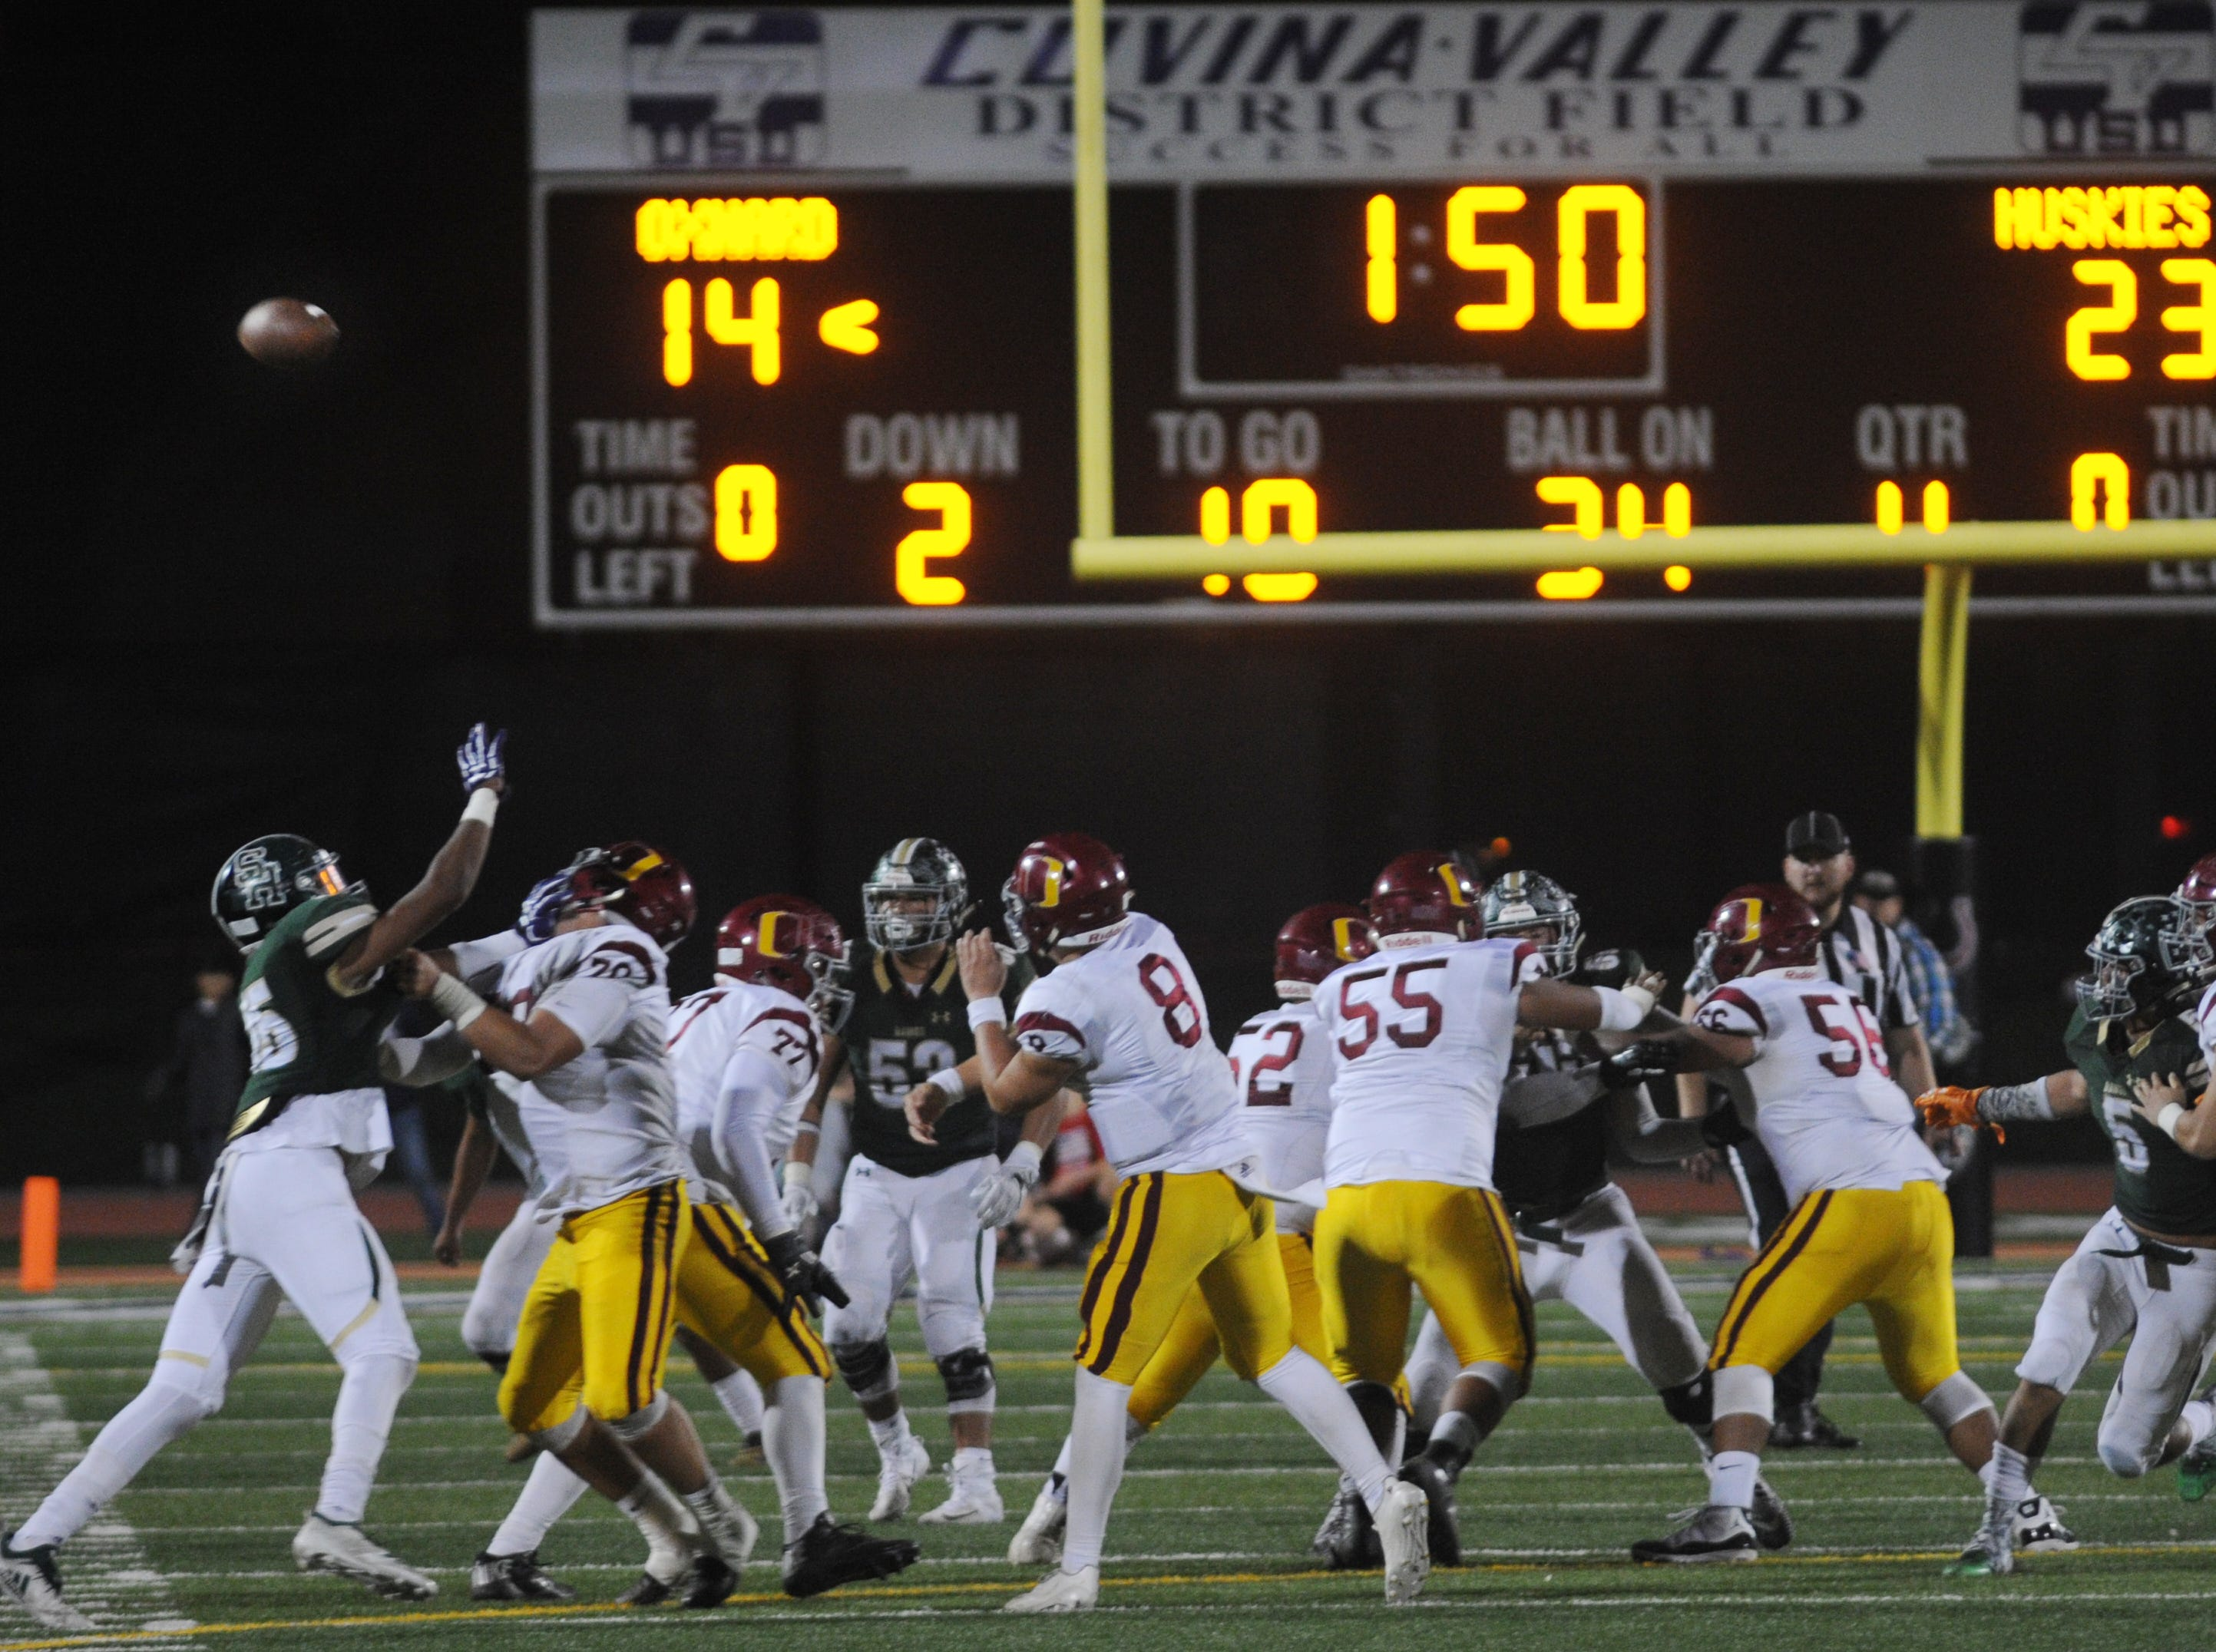 Oxnard High quarterback Vincent Walea  throws a pass late in the Yellowjackets' 24-13 loss to South Hills in the CIF-SS Division 6 championship game Saturday night at Covina District Field.